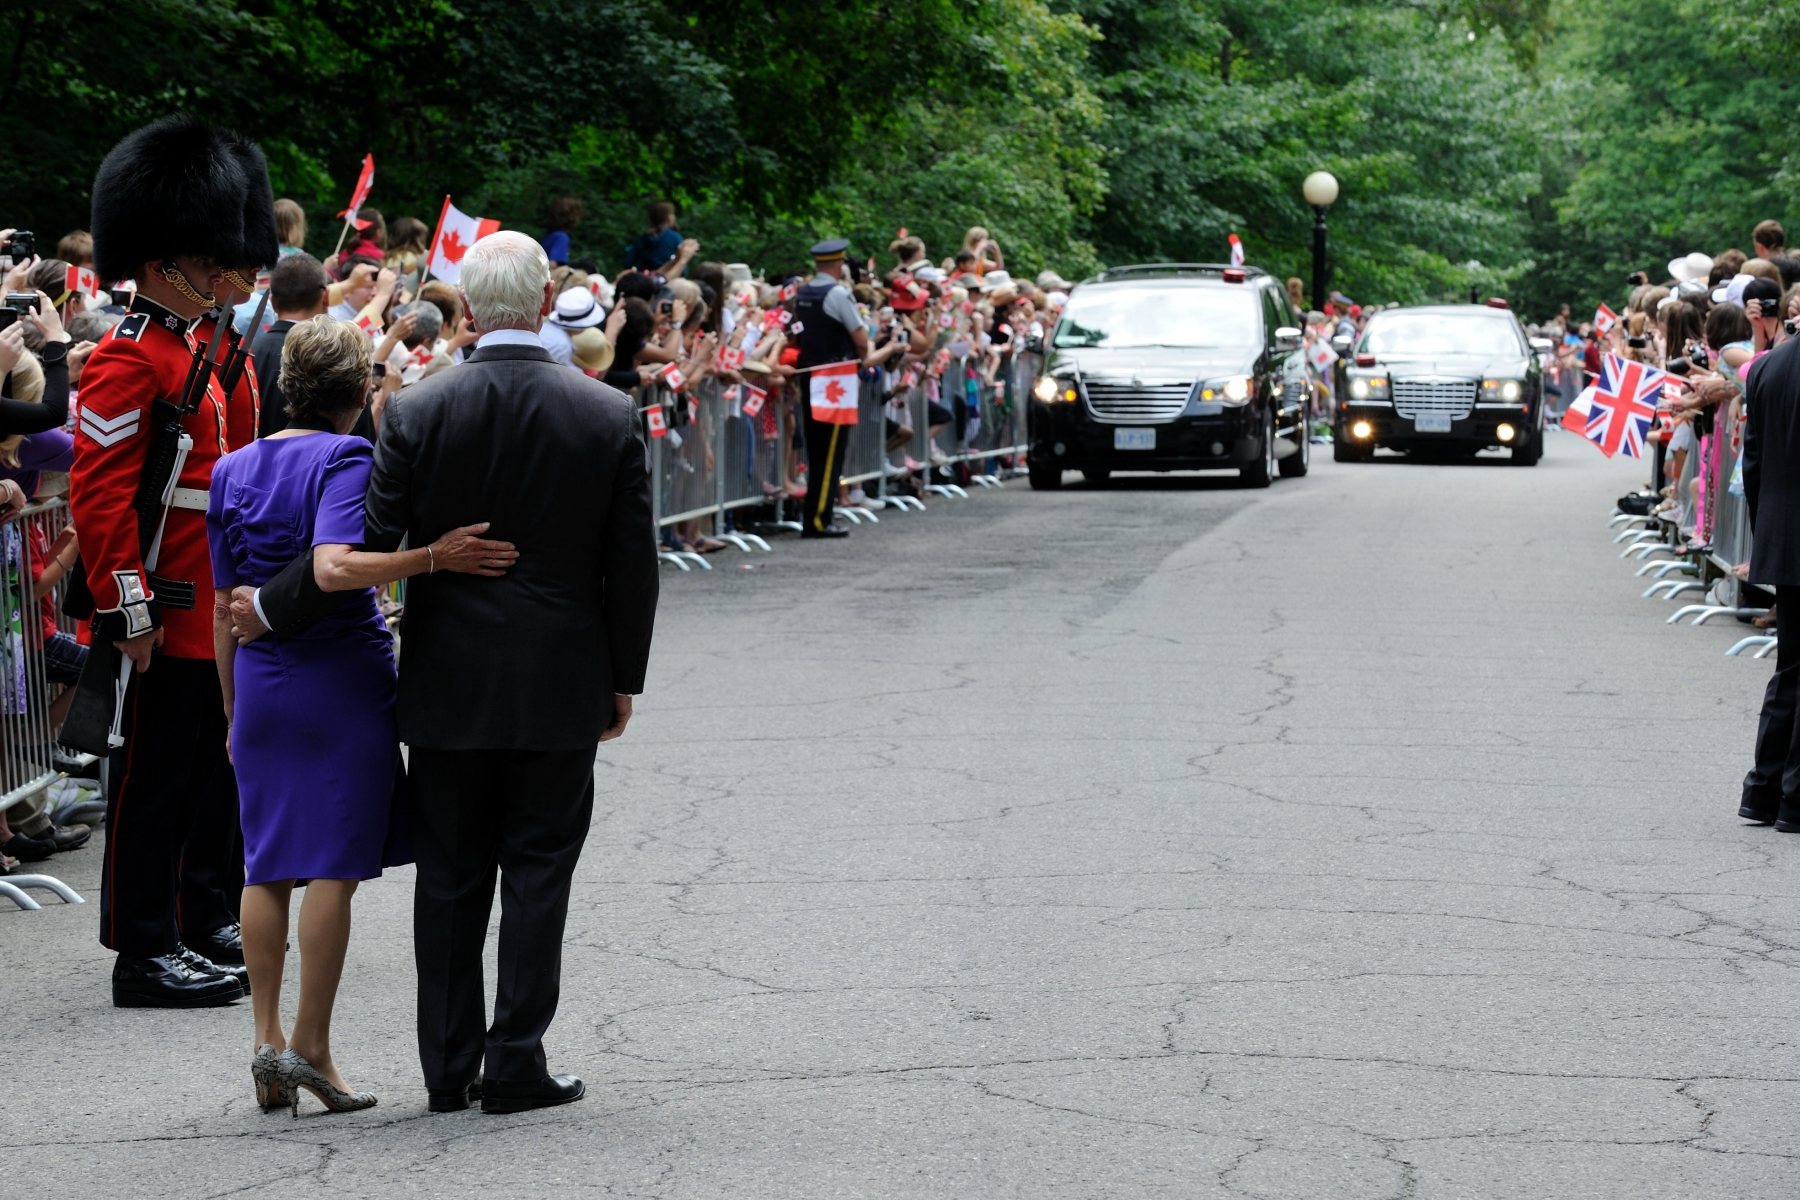 Their Excellencies waited for the motorcade to arrive. During their visit to Canada's Capital region, the Duke and the Duchess of Cambridge stayed at Rideau Hall.